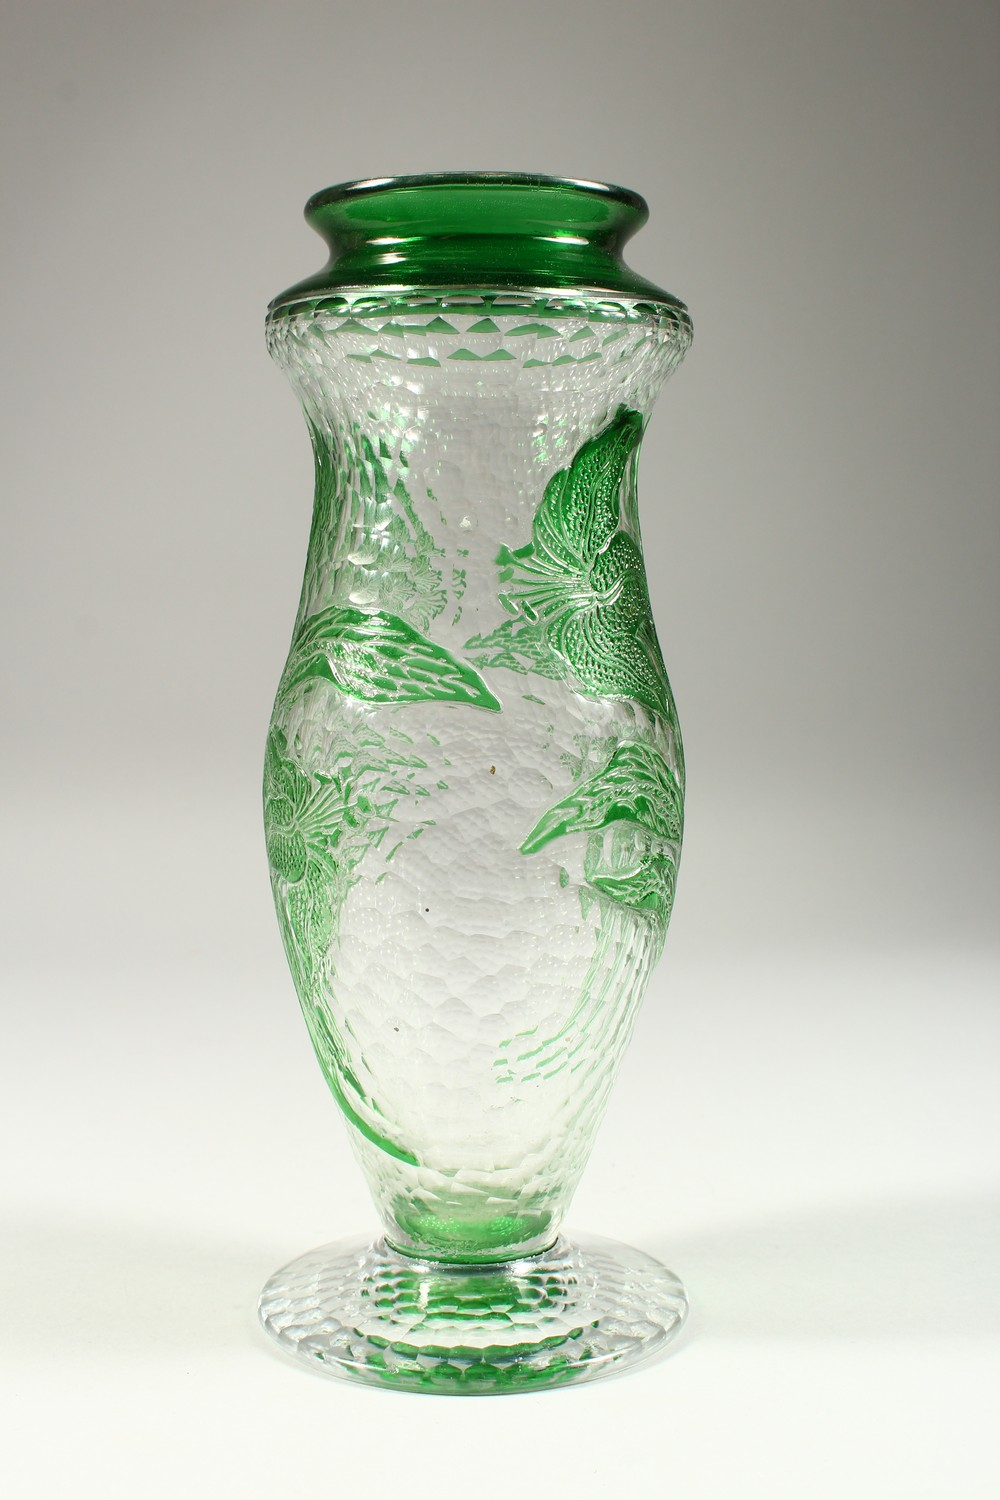 Lot 1042 - A FRENCH MOULDED AND CUT GLASS PEDESTAL VASE, with green floral decoration. 10.75ins high.